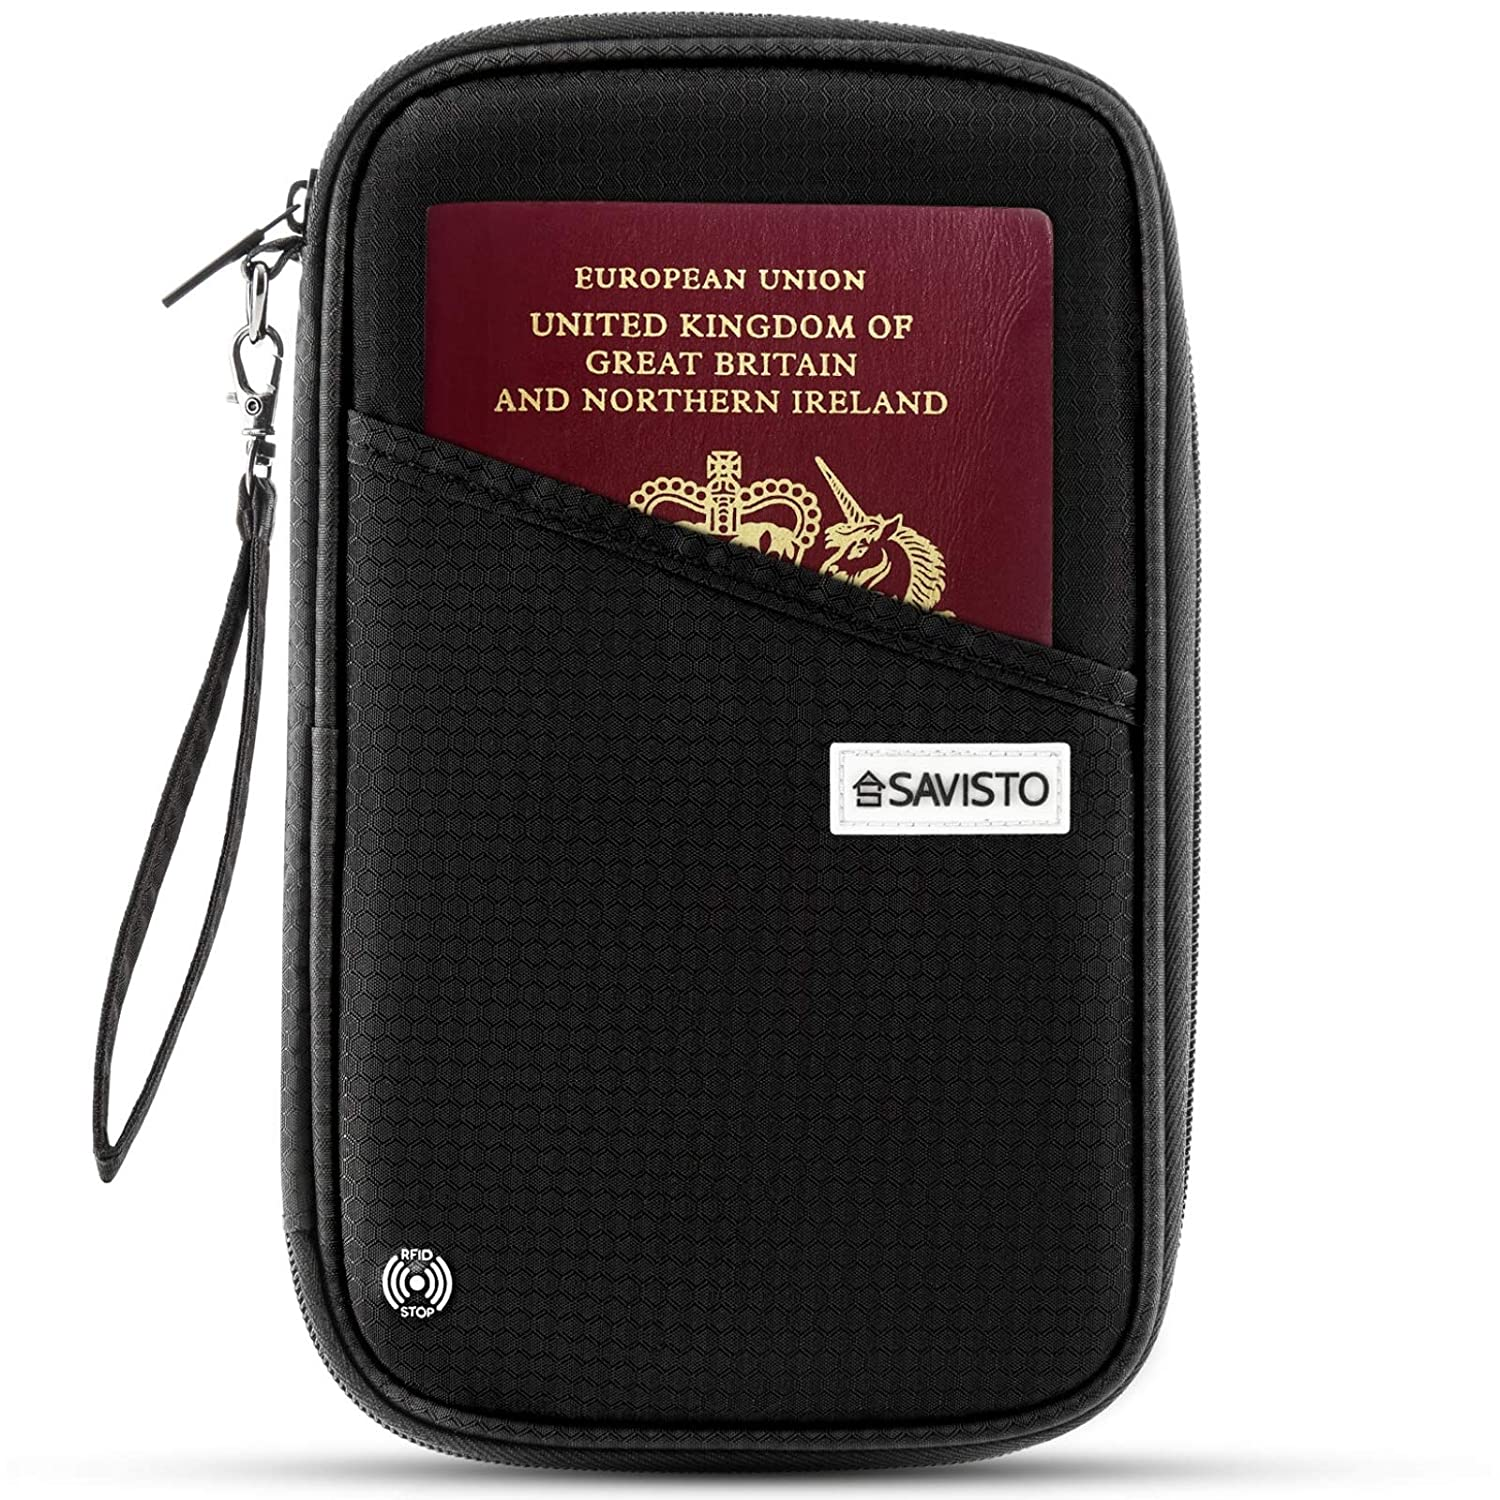 5056fa96abac Savisto Multi-Purpose Travel Wallet Organiser | RFID Blocking Passport &  Document Holder Inc. Slots & Compartments for Credit Cards, Boarding  Passes, ...